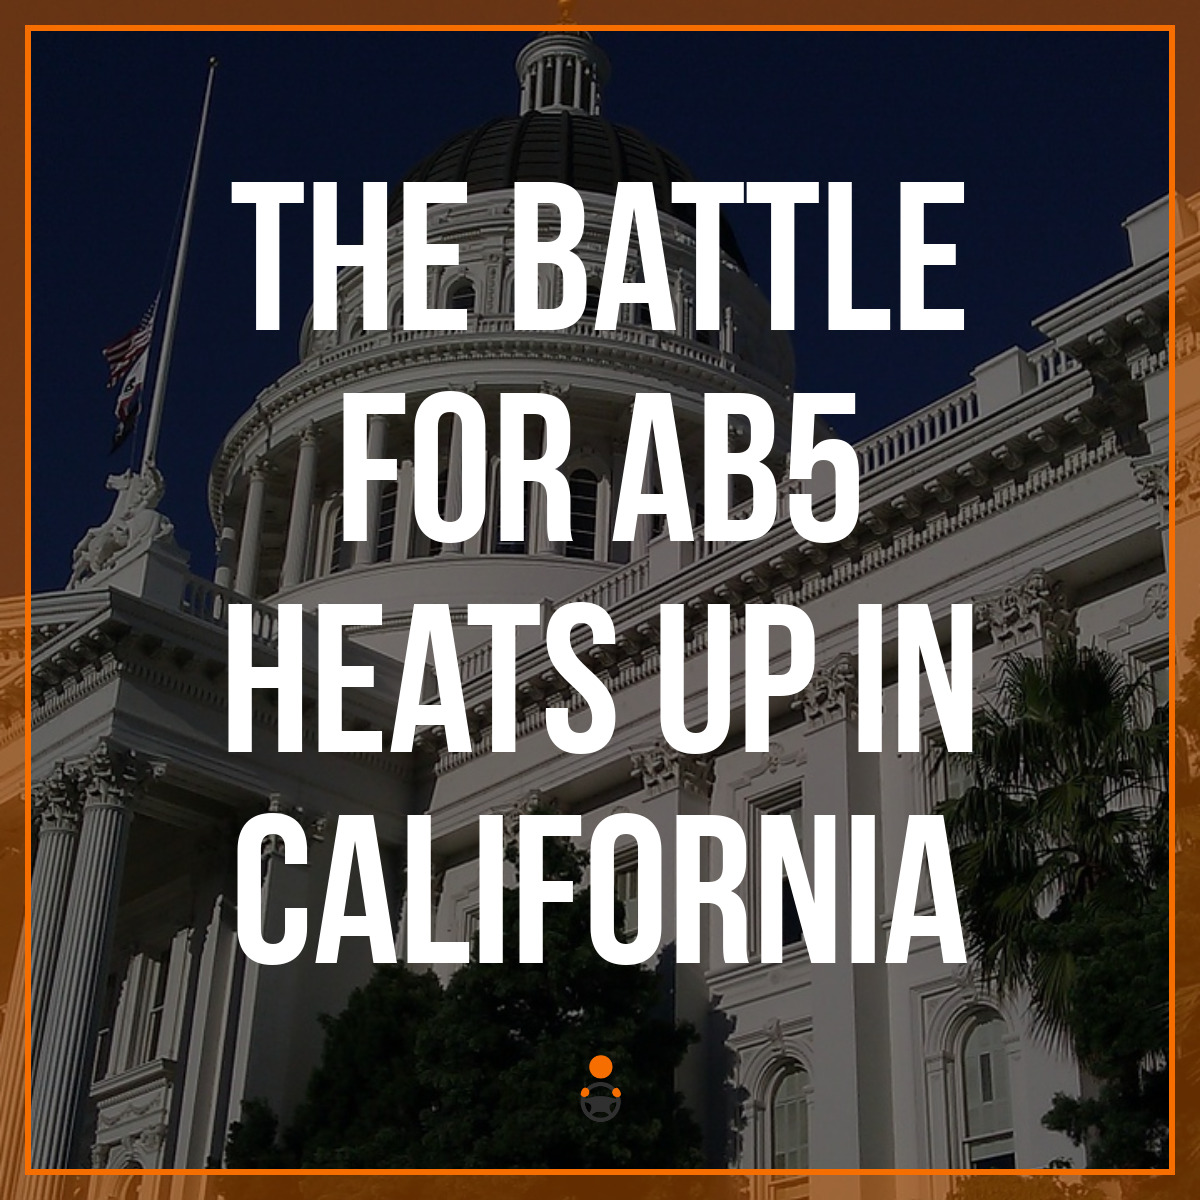 The Battle for AB5 Heats Up in California